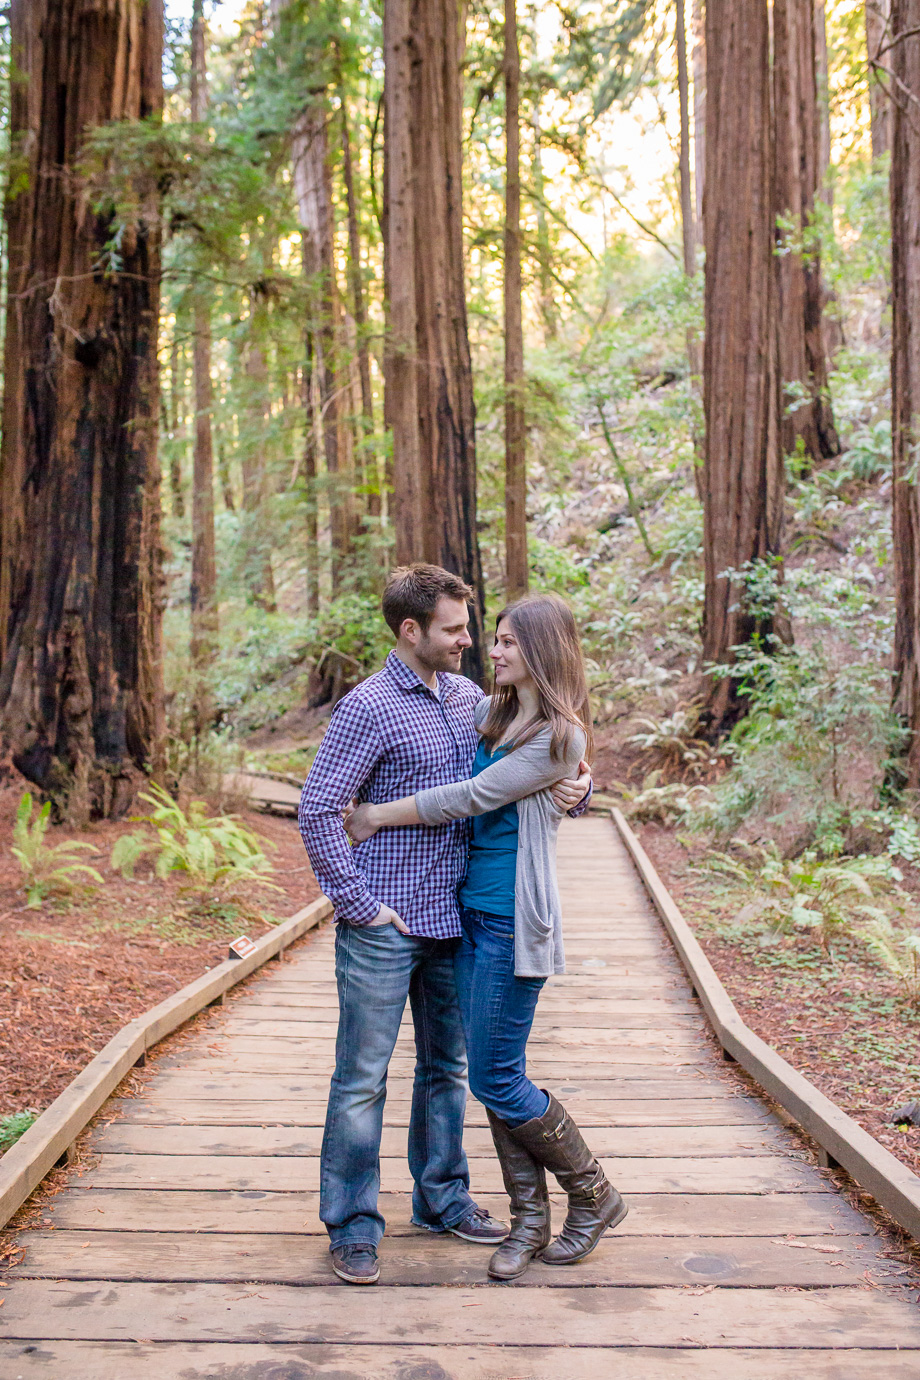 muir woods national park engagement photo on the hiking trail